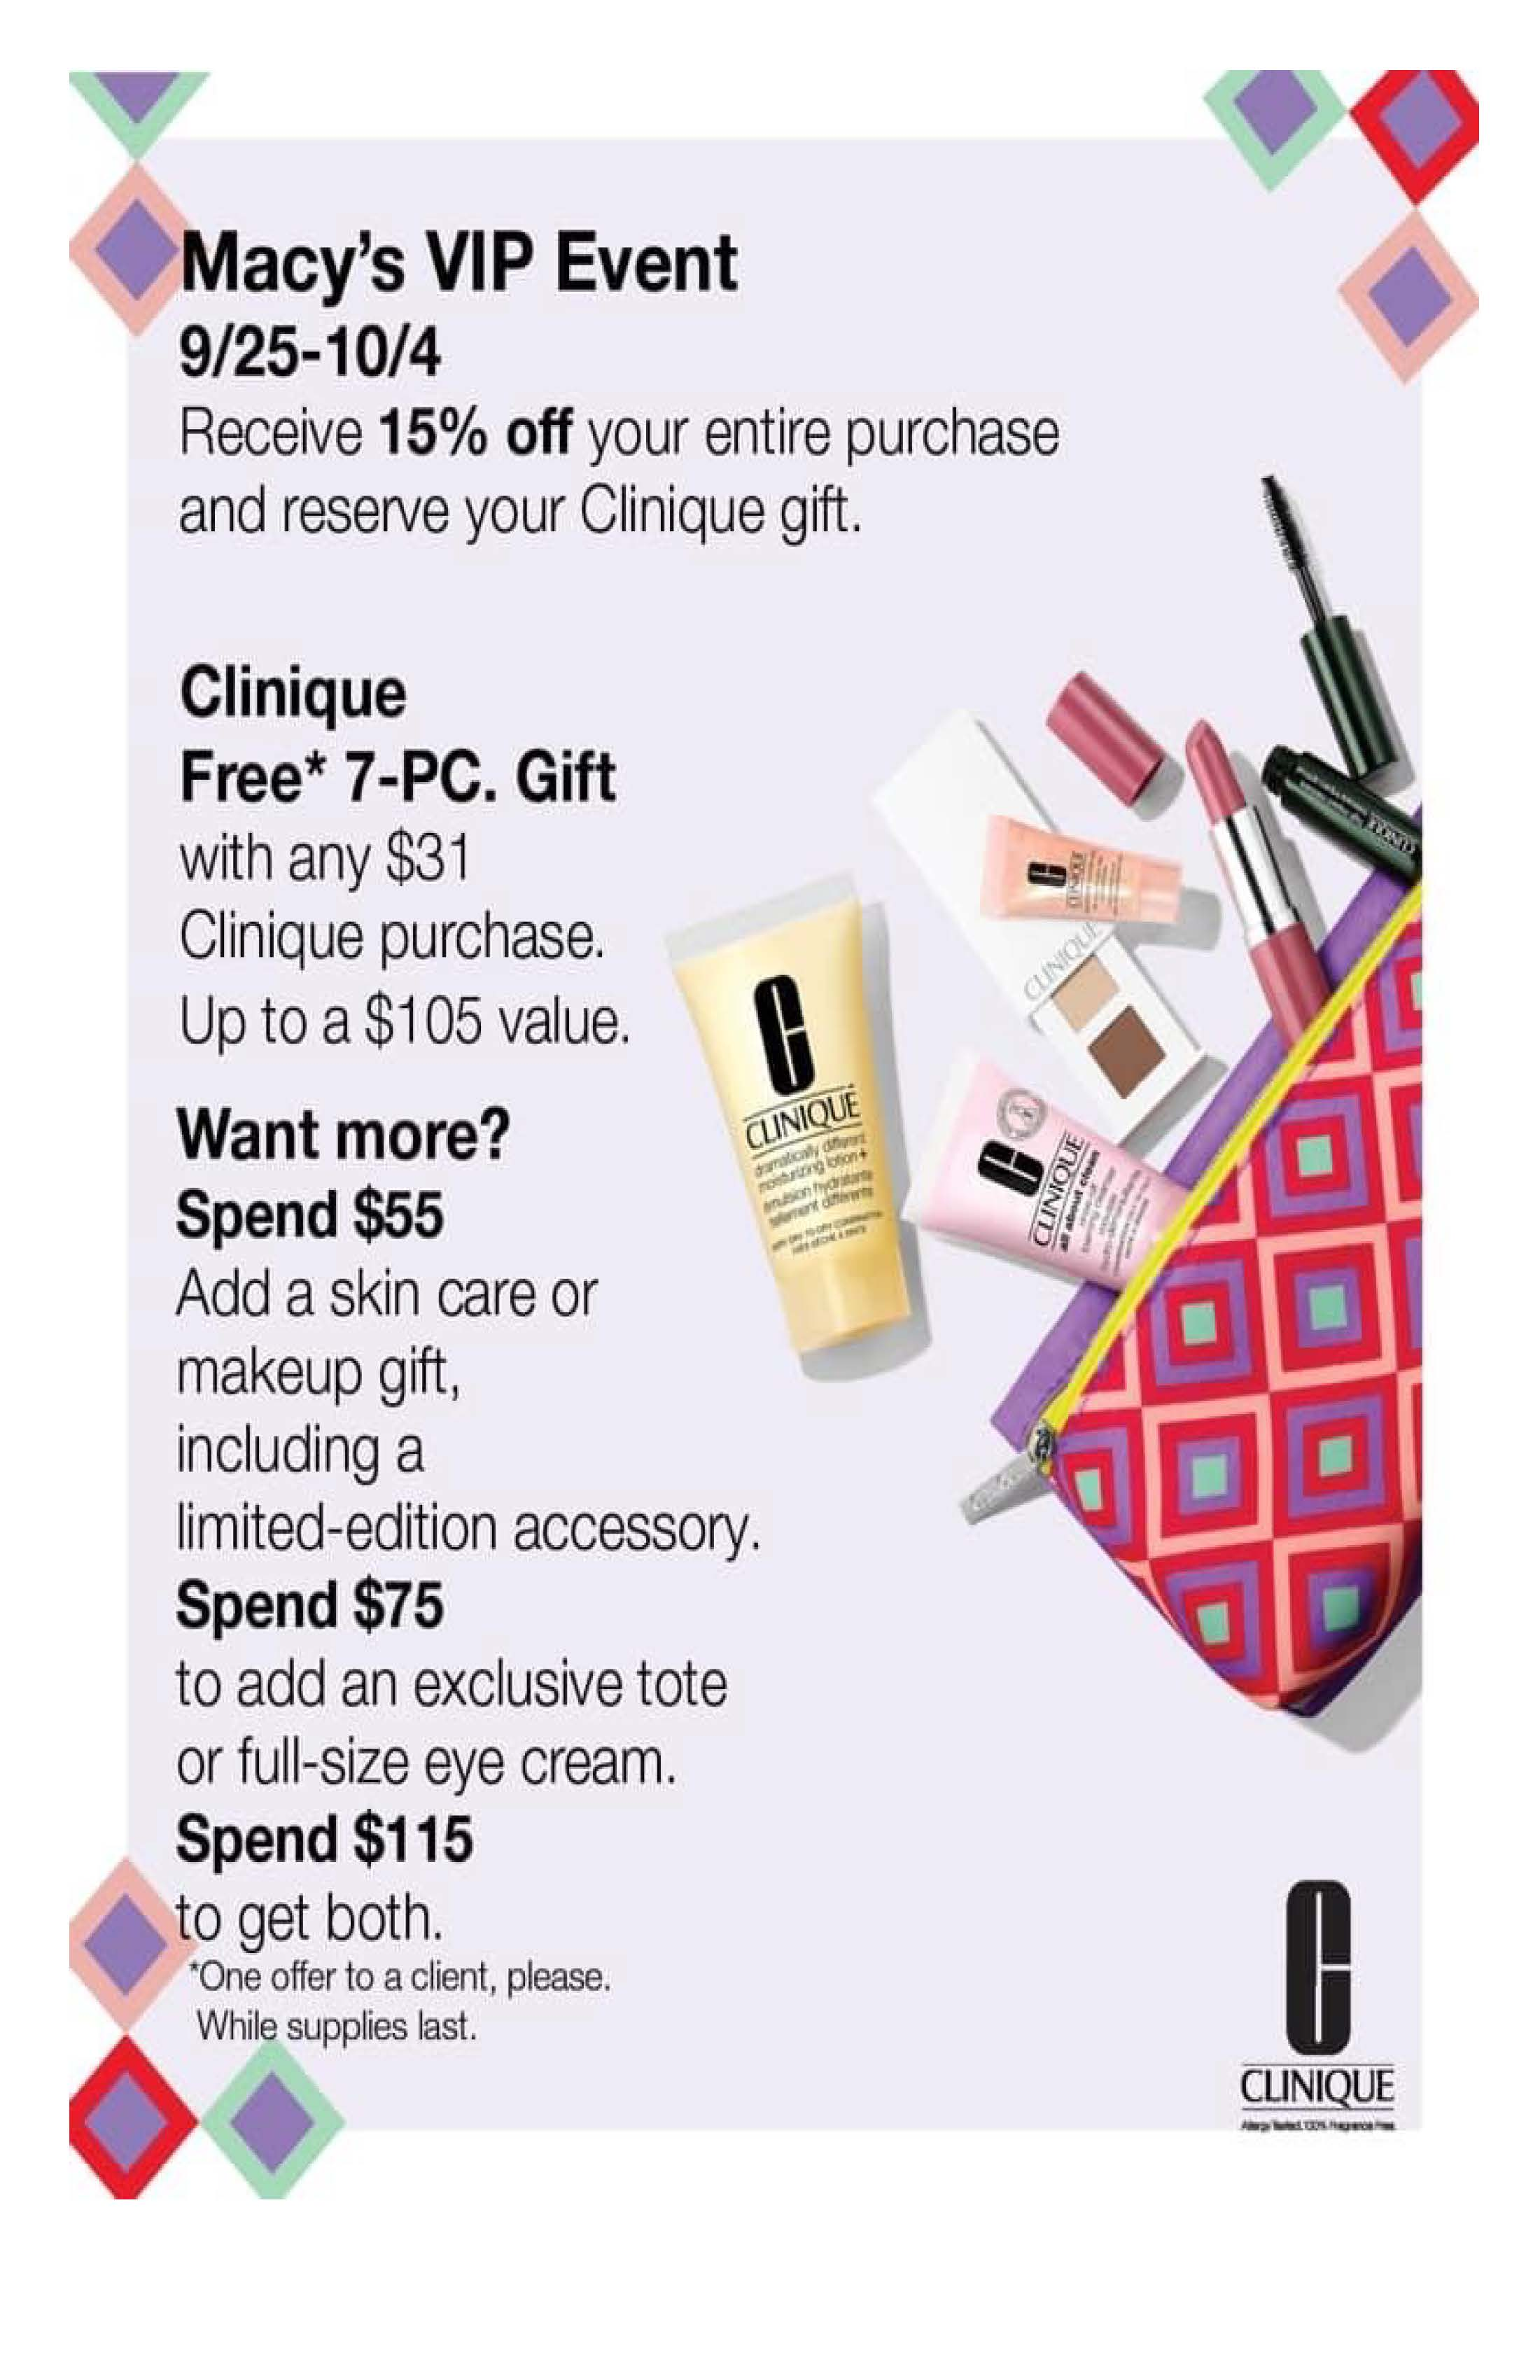 Clinique 15% off from macy's